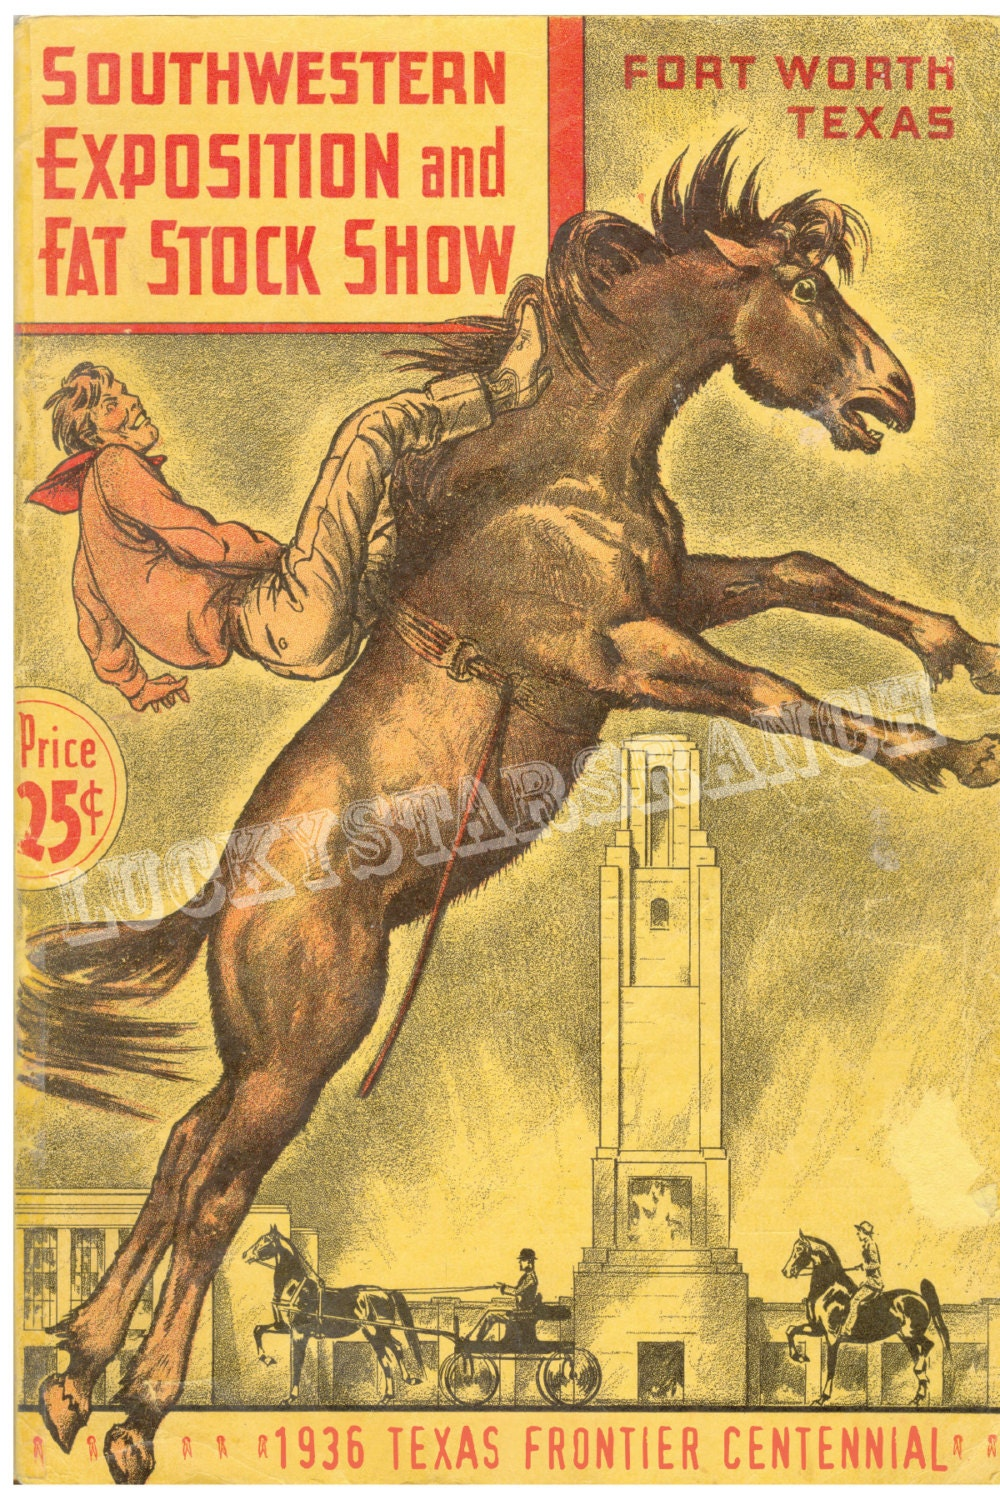 Cowboy Rodeo Ft Worth Fat Stock Show And 1936 Texas Centennial